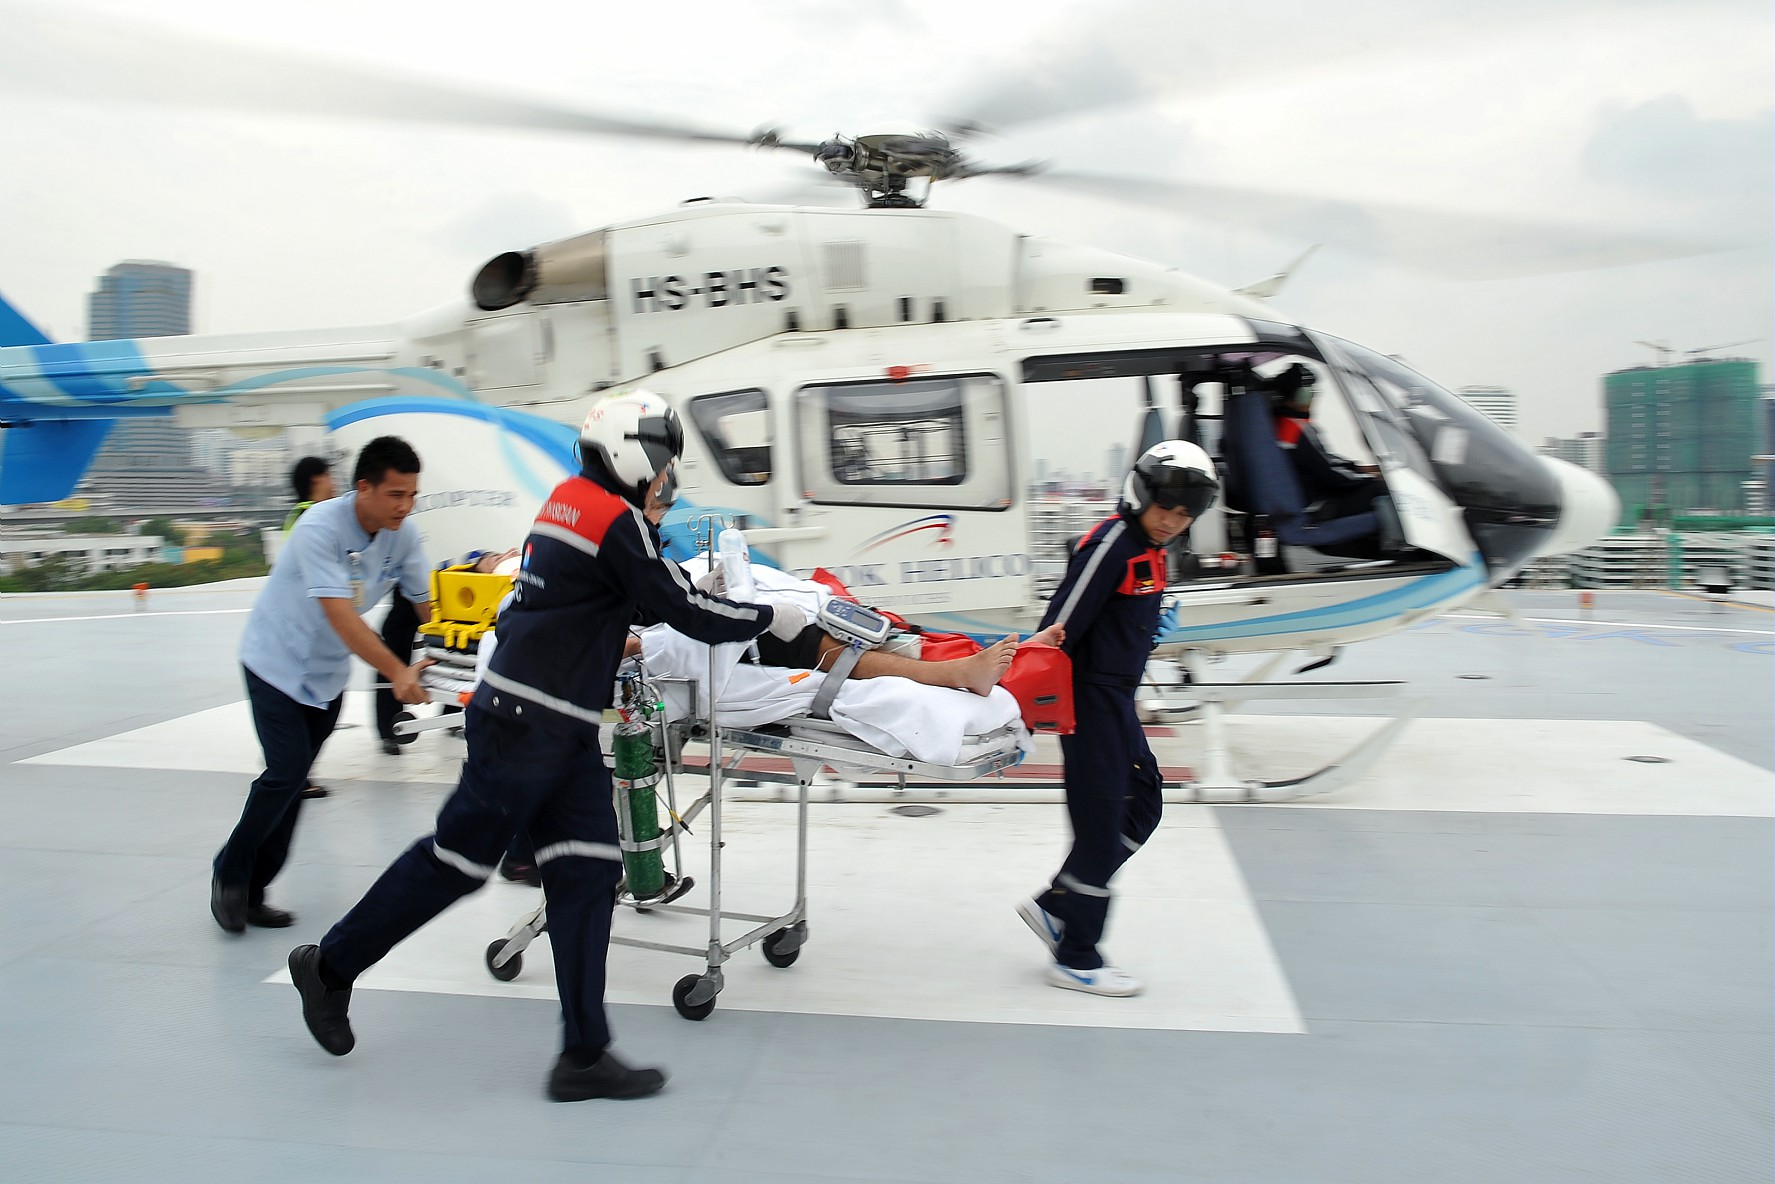 helicopters for ems civil missions airbus helicopters